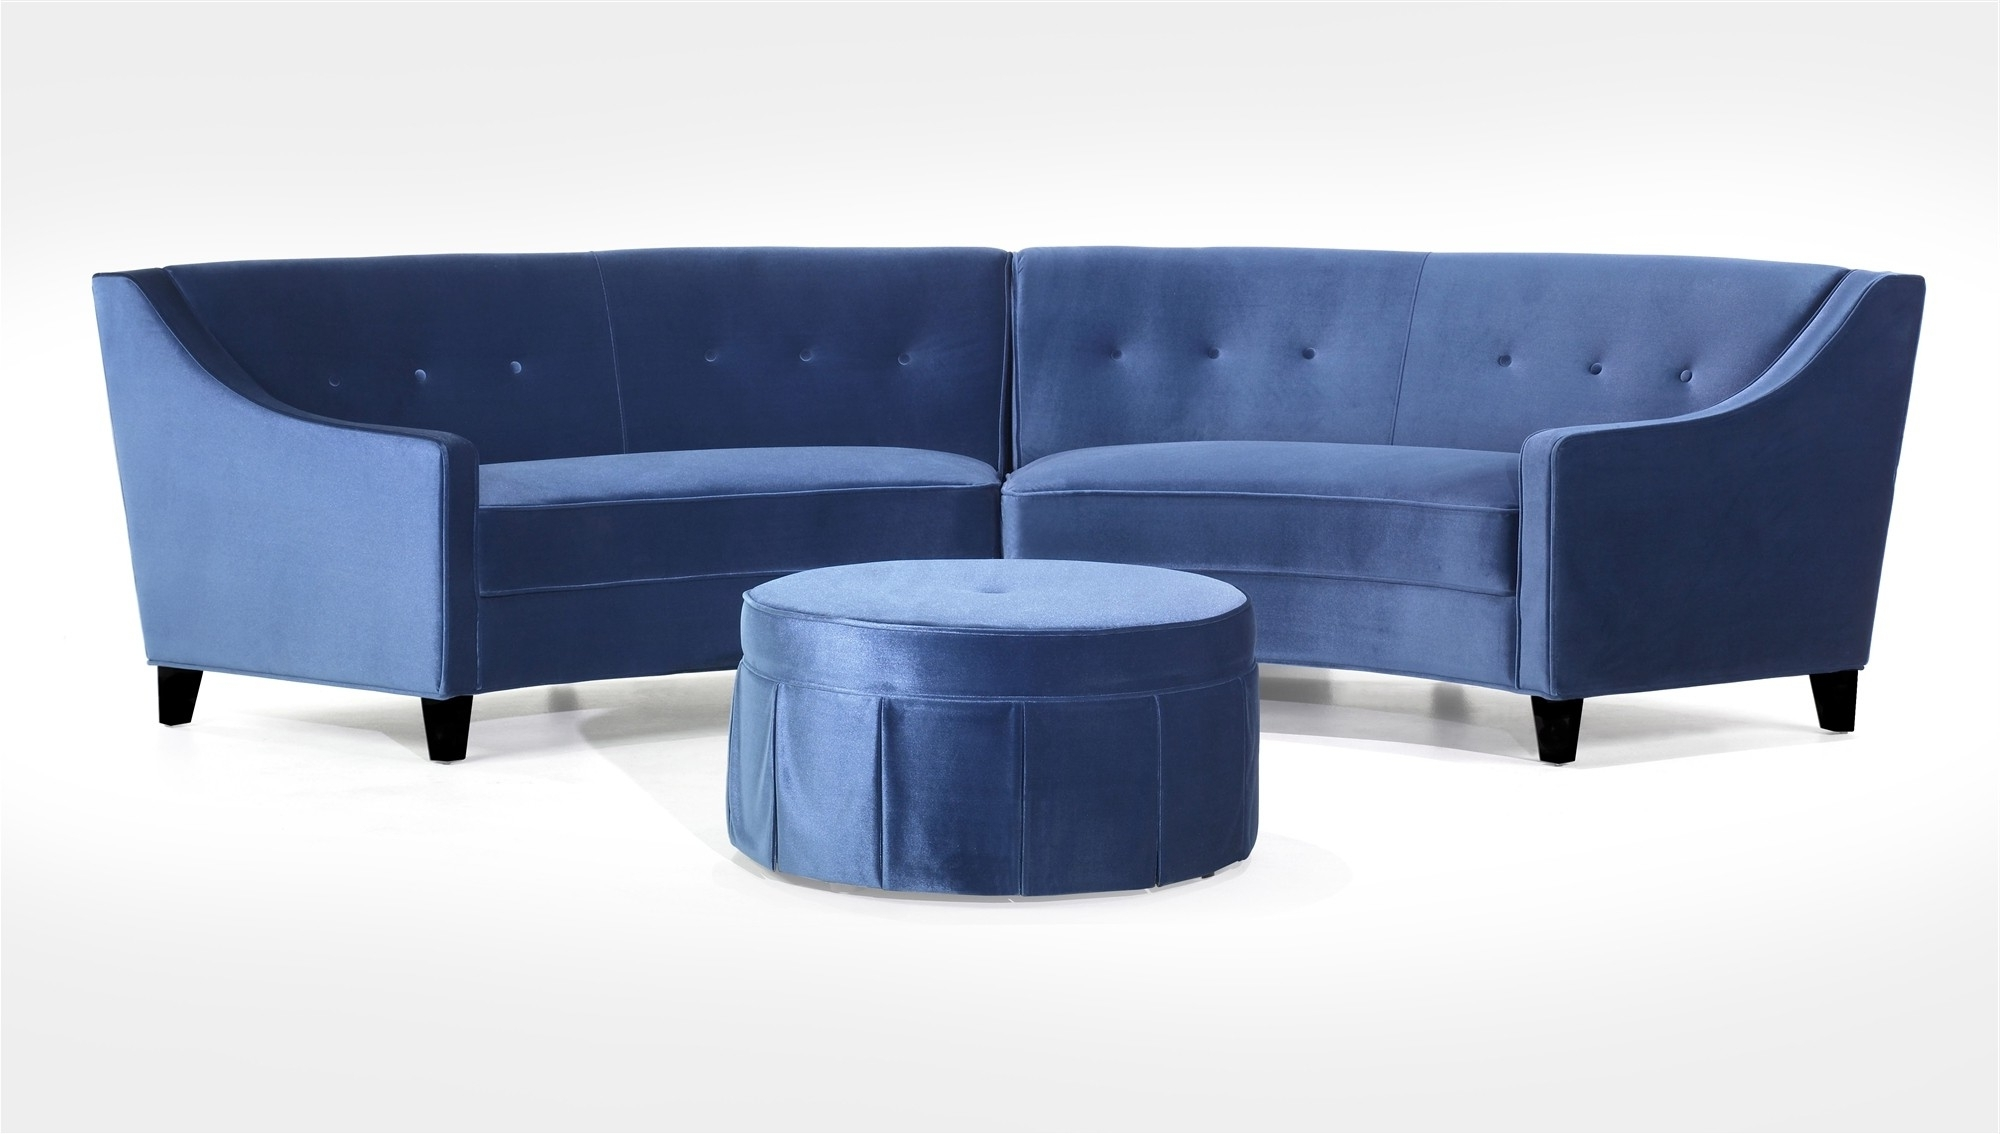 Sectional Sofas In Atlanta Regarding Most Up To Date Sectional Sofas Atlanta – Cleanupflorida (View 14 of 15)